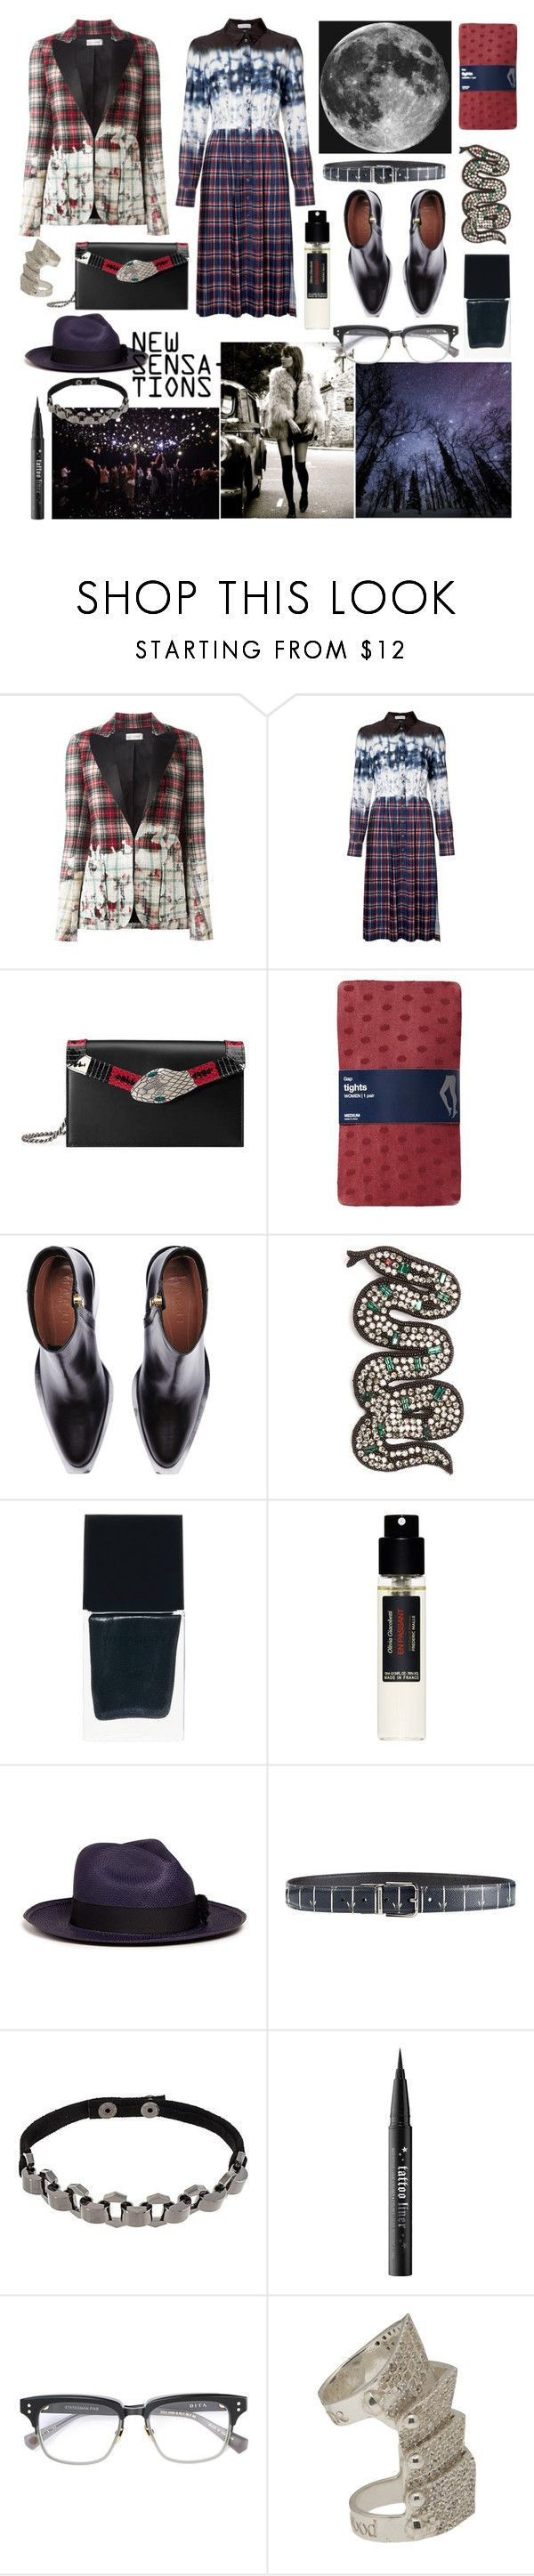 """secret moonlight"" by nothingisnormal ❤ liked on Polyvore featuring Faith Connexion, Altuzarra, Gucci, Gap, Marni, Witchery, Frédéric Malle, Sensi Studio, Dolce&Gabbana and Manokhi"